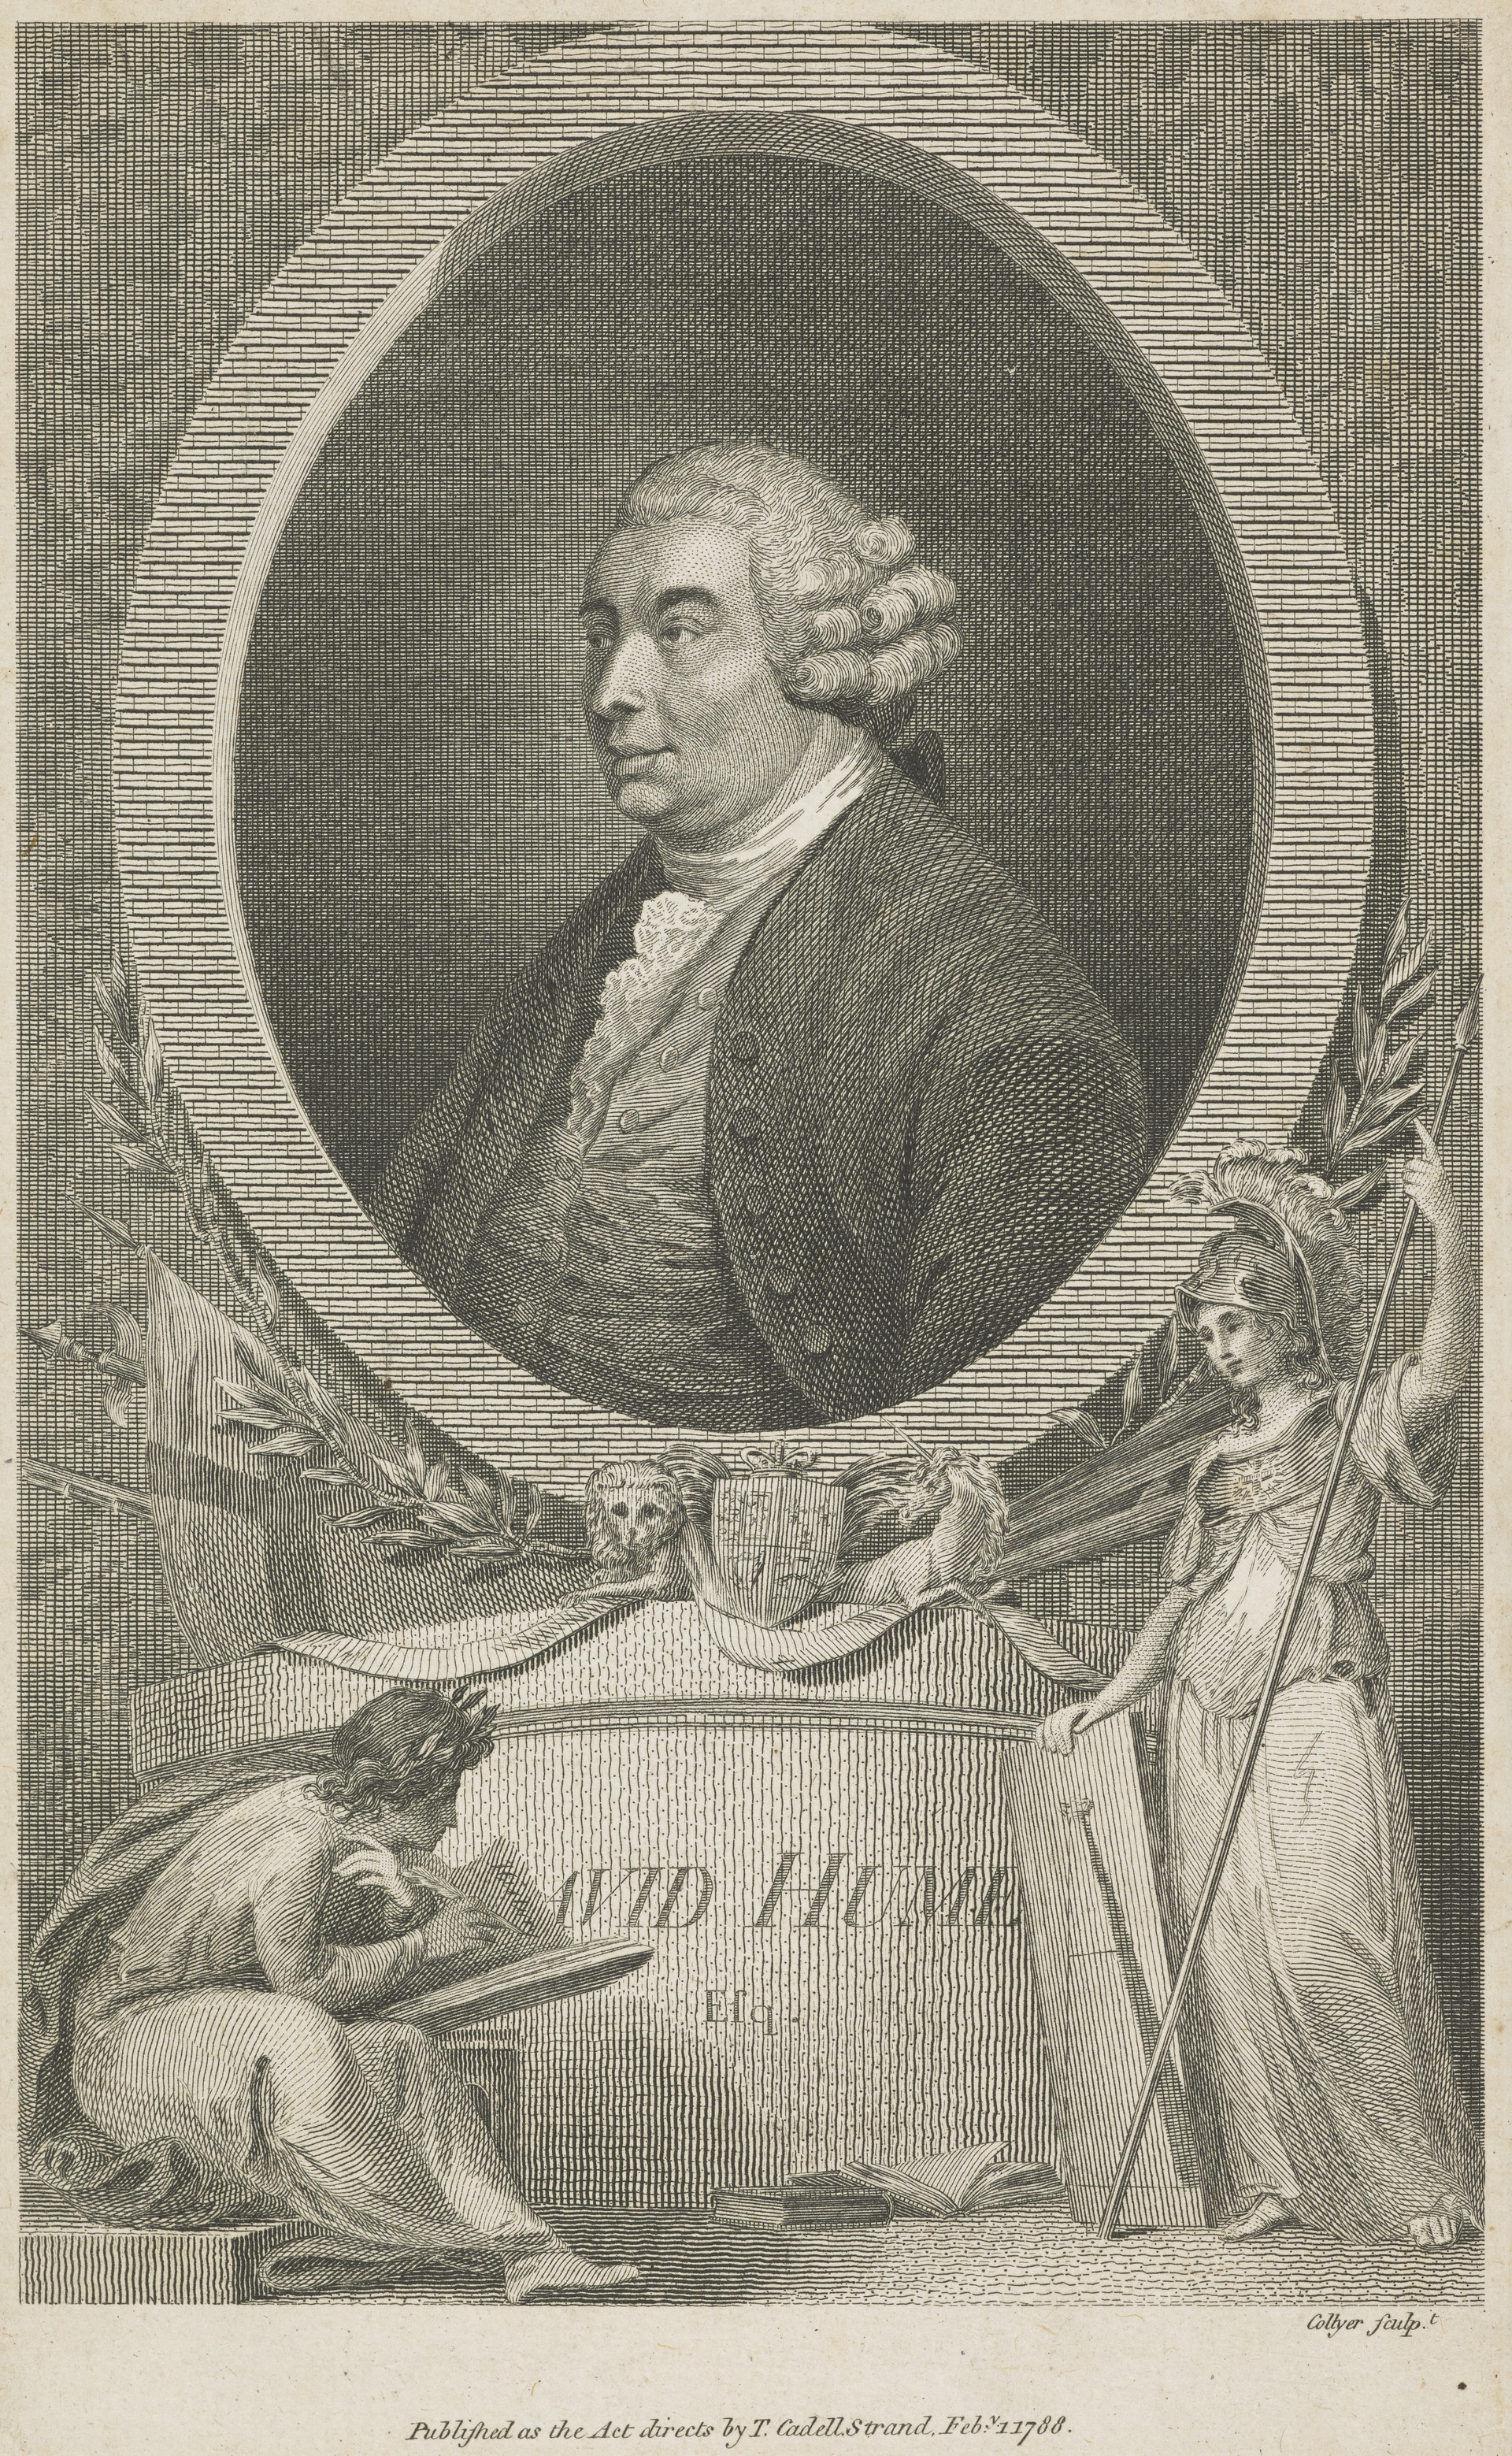 Joseph Collyer, portrait of David Hume, Scottish National Portrait Gallery SP IV 7711.